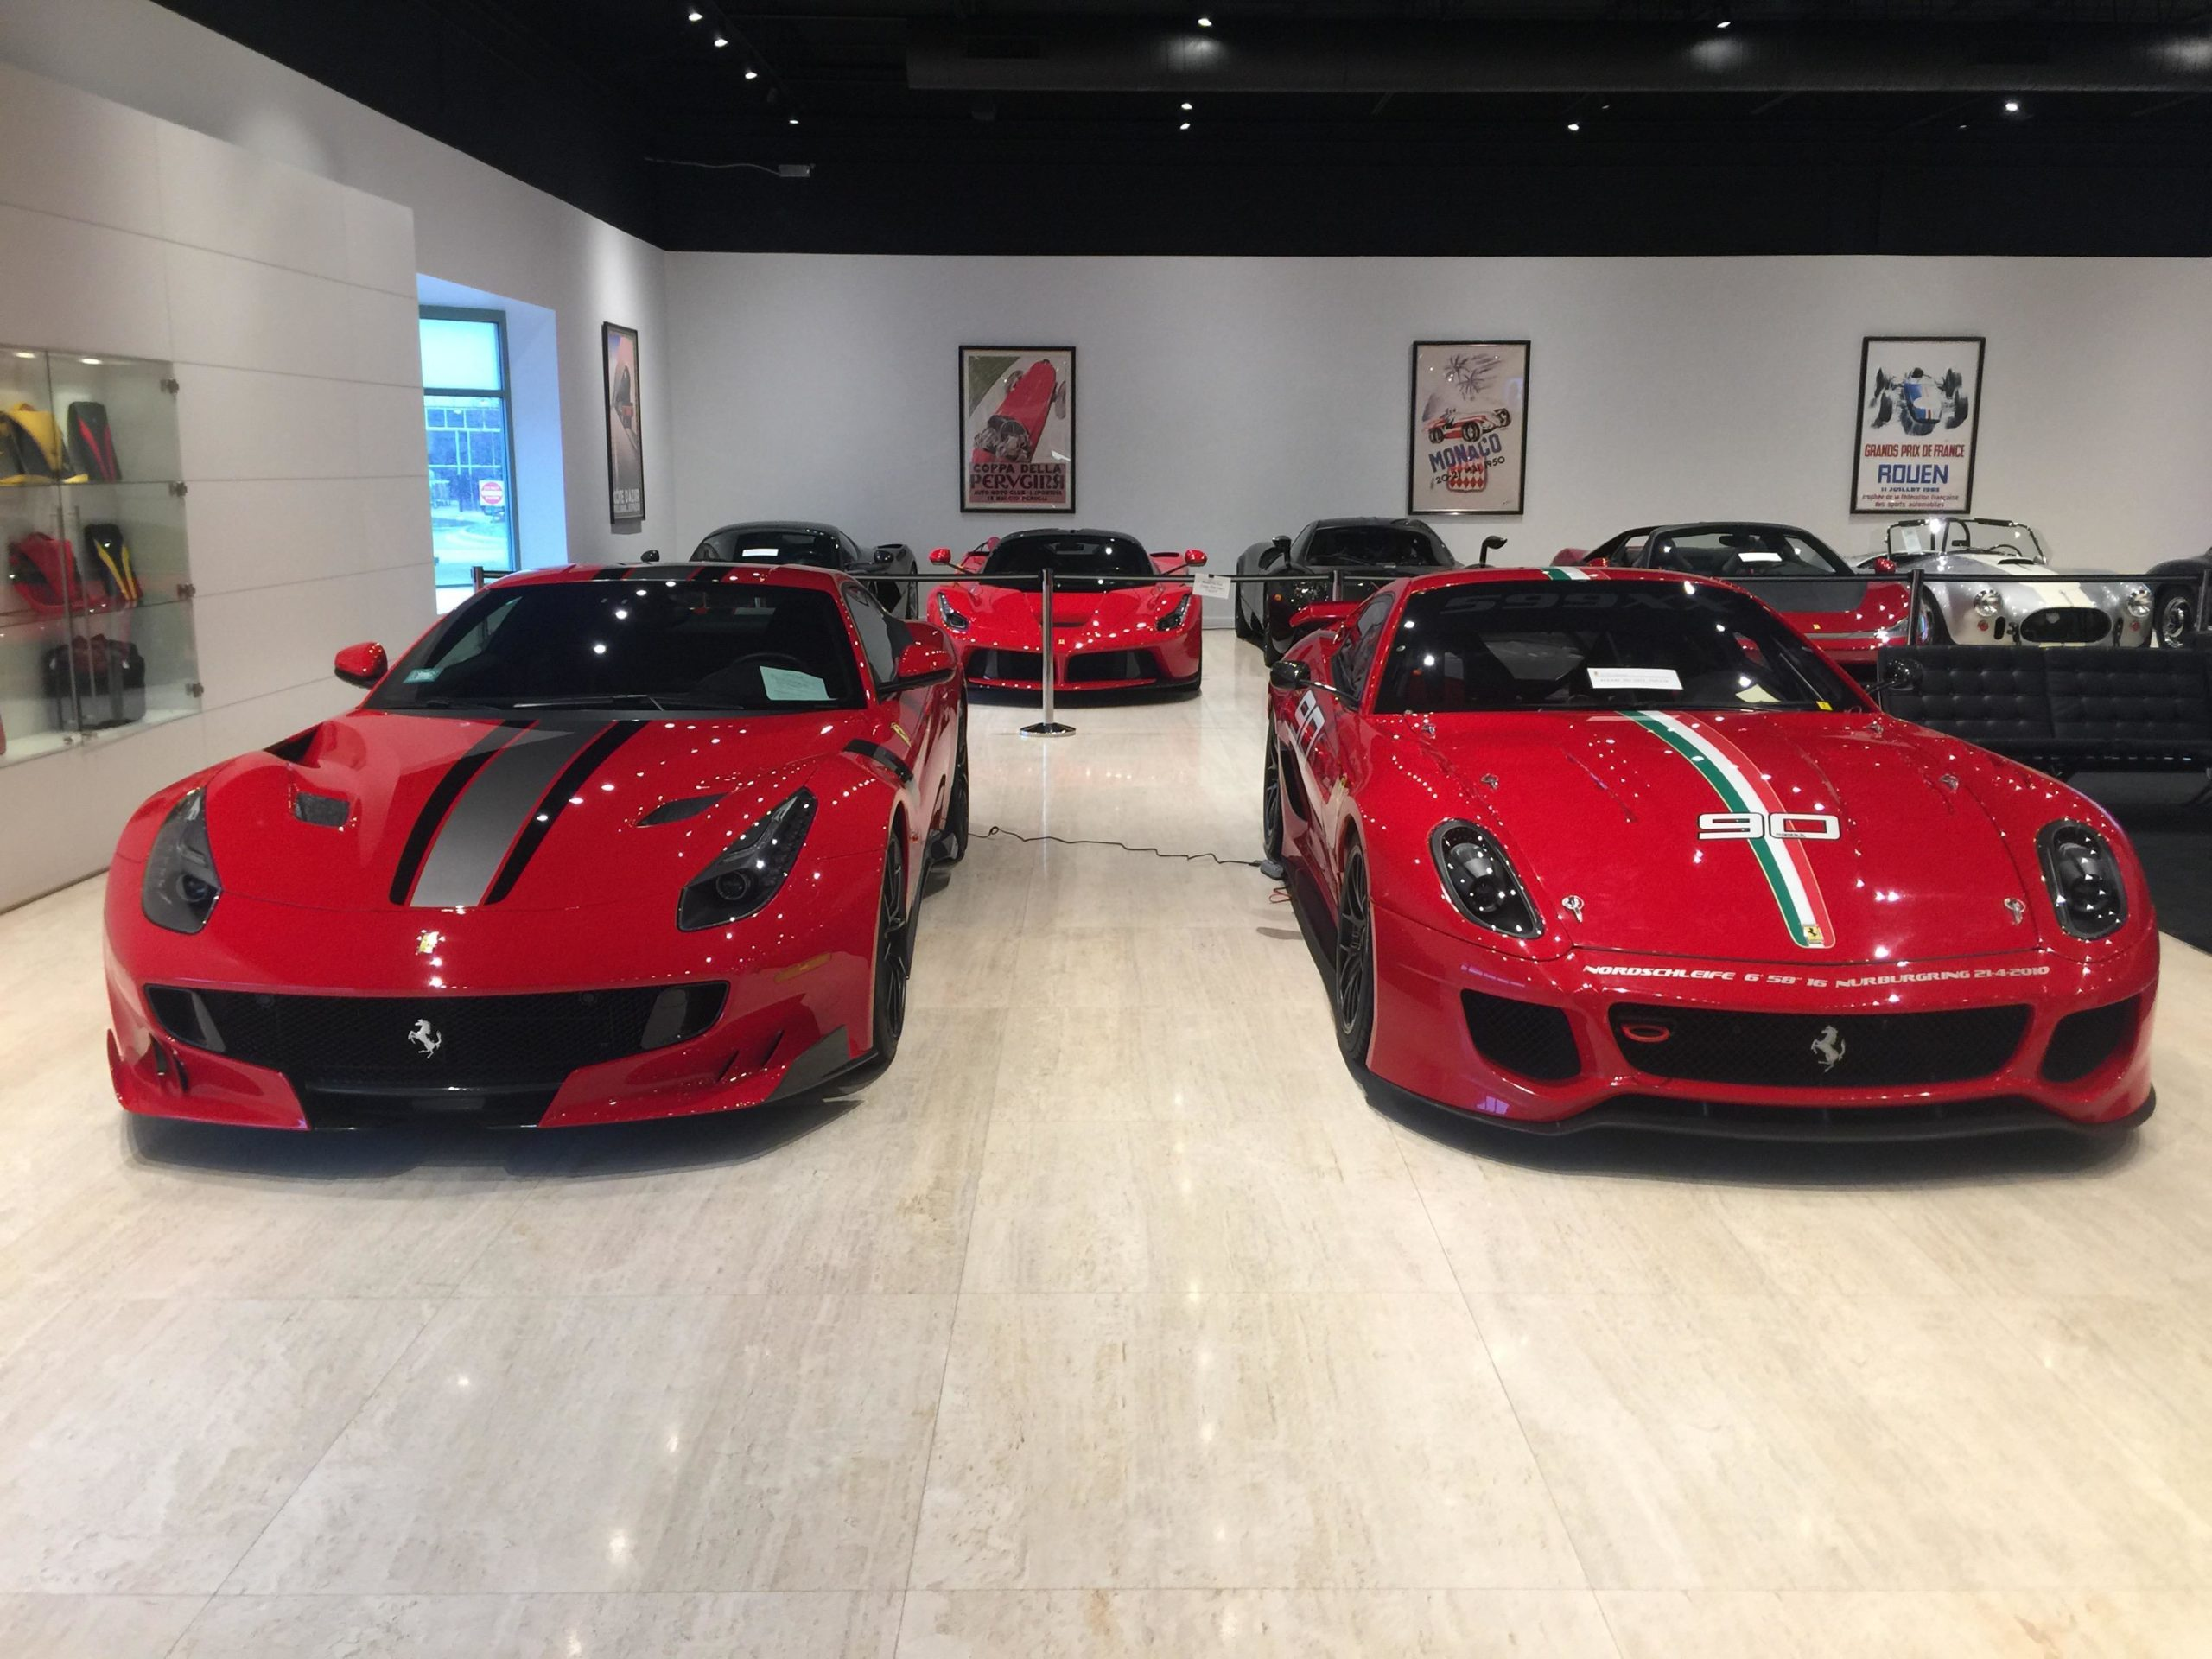 Such a gorgeous collection of cars. Ferrari F12 TDF and Ferrari 599XX.